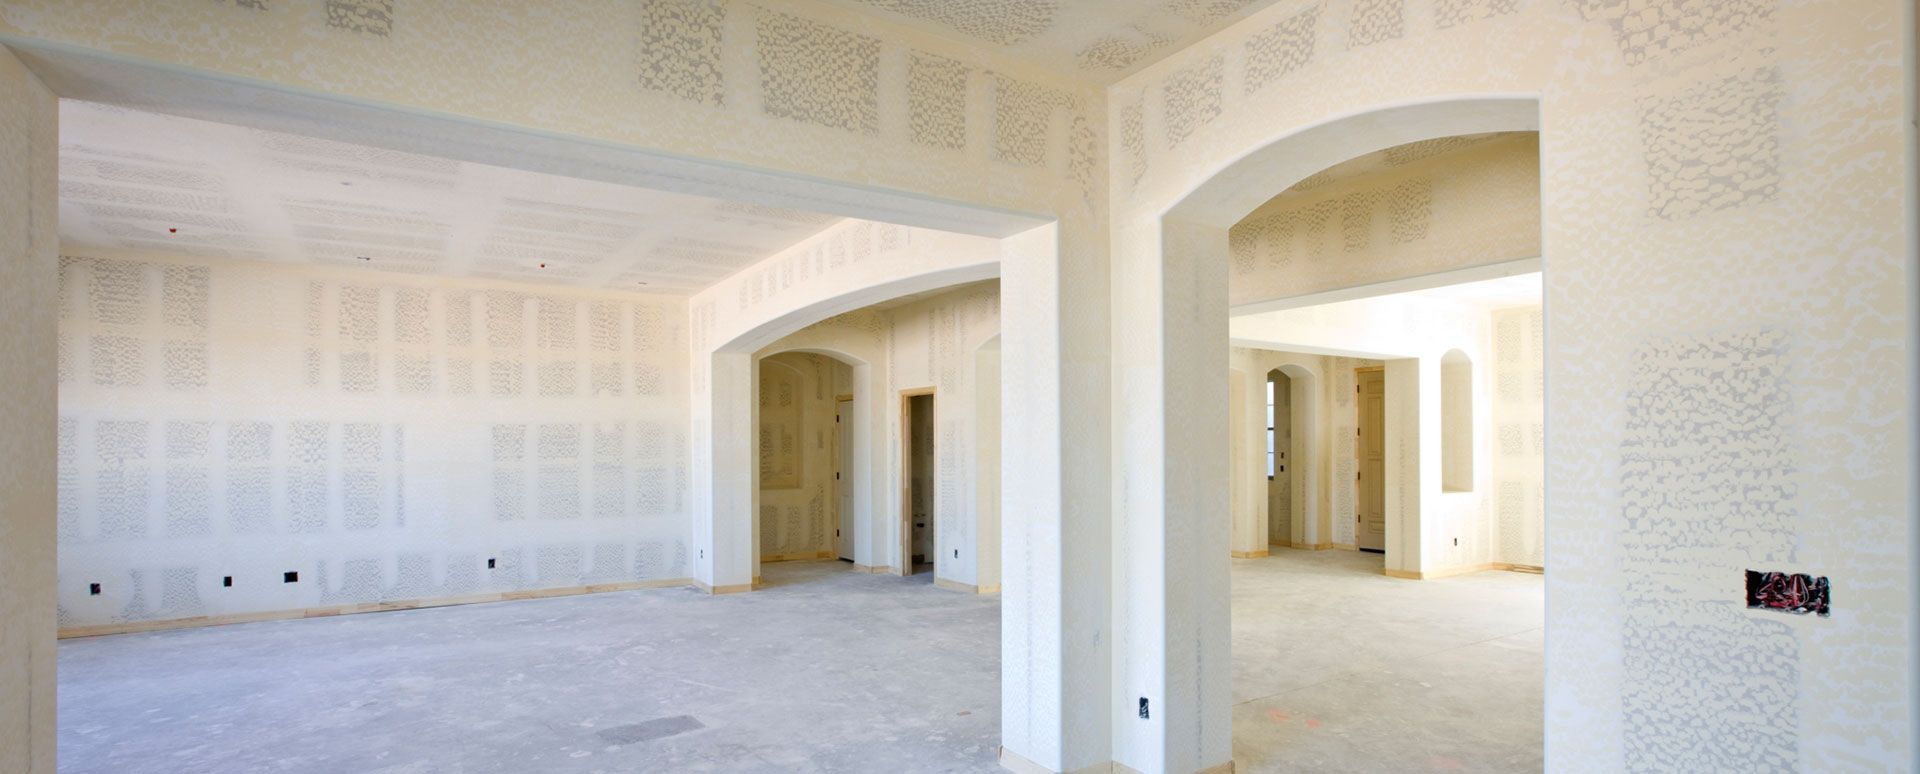 Tips To Choose Right Drywall For The Home Drywall Repair Drywall Drywall Installation